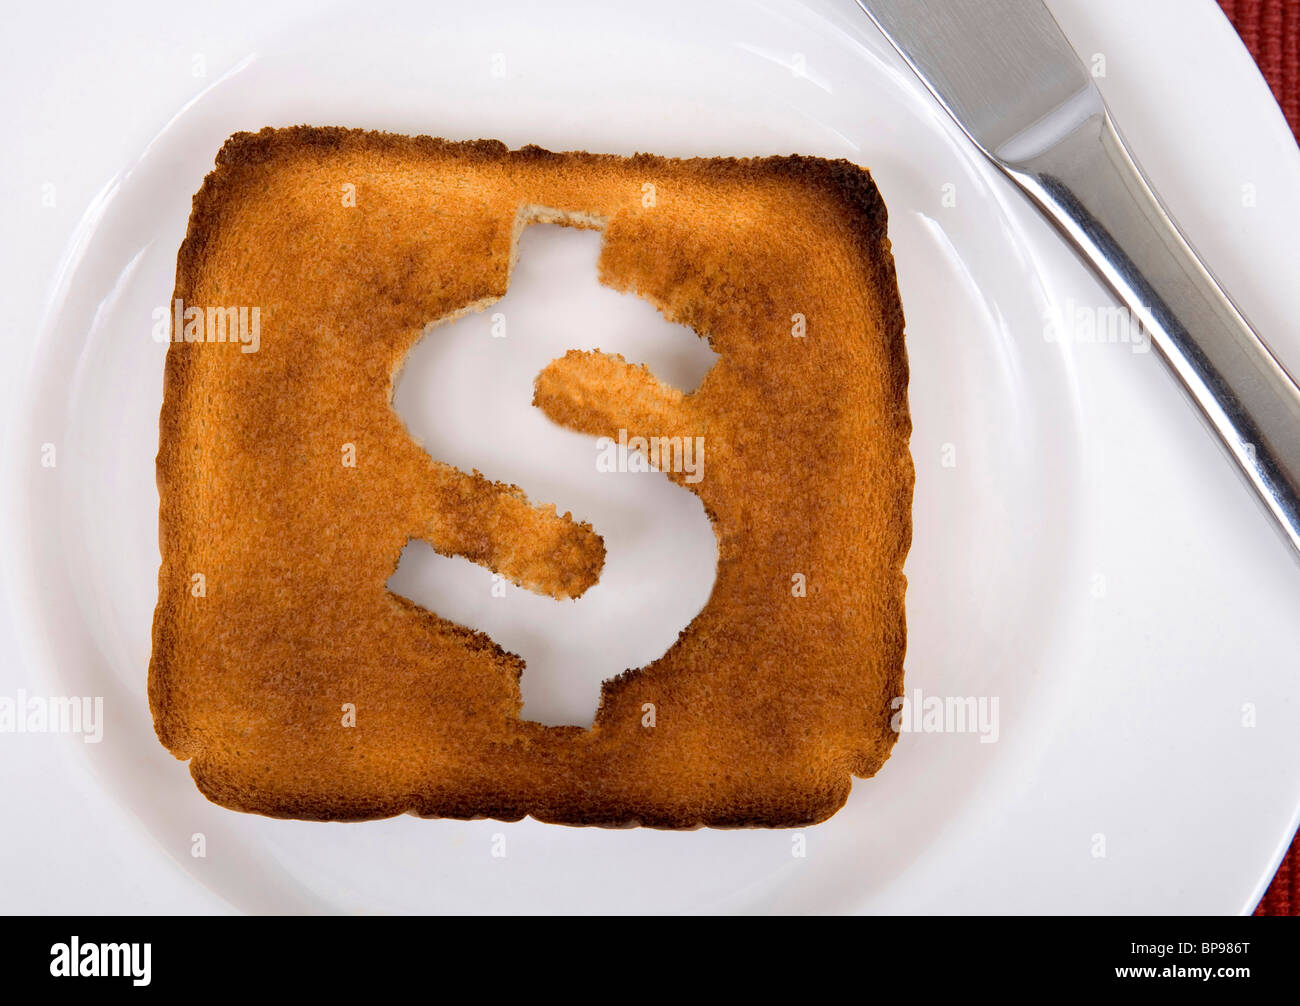 The dollar is toast metaphor image. - Stock Image